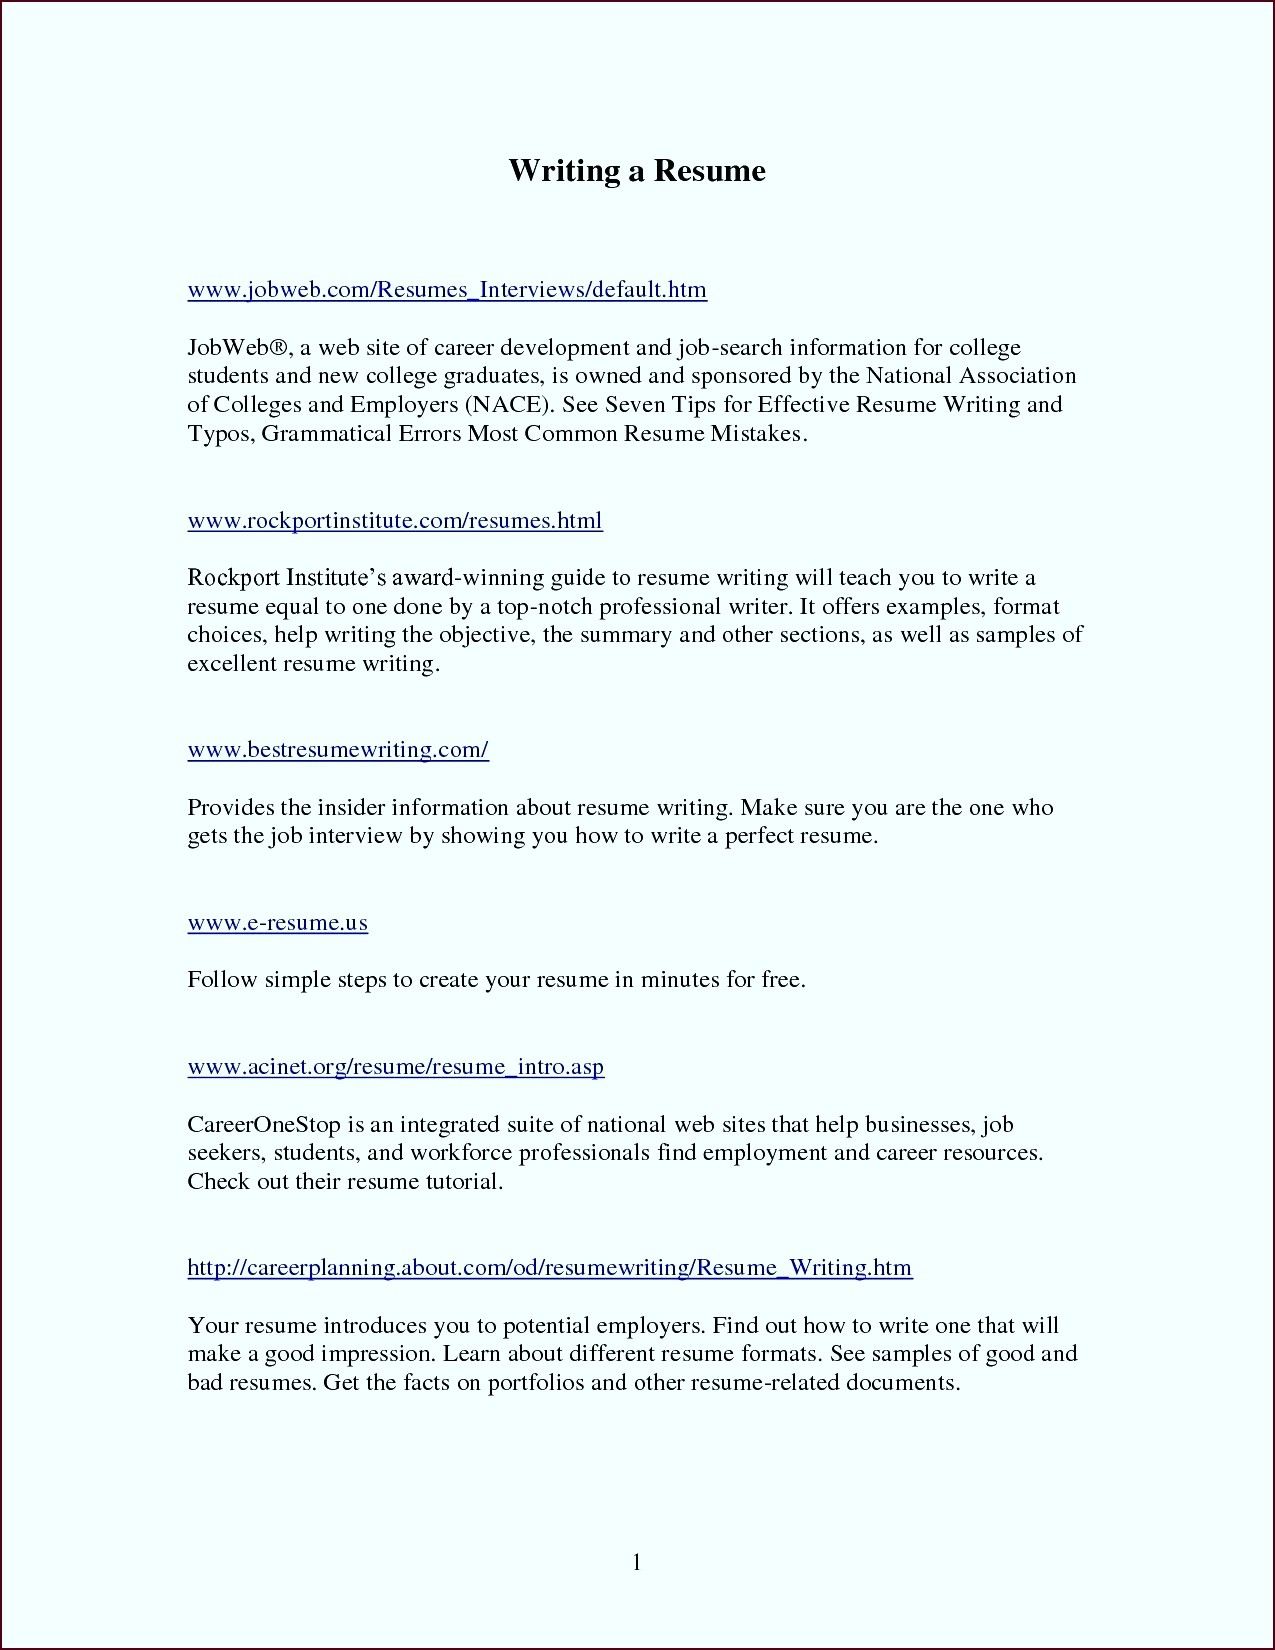 Job Offer Letter Content | Simple Job Offer Letter Template Samples Letter Templates